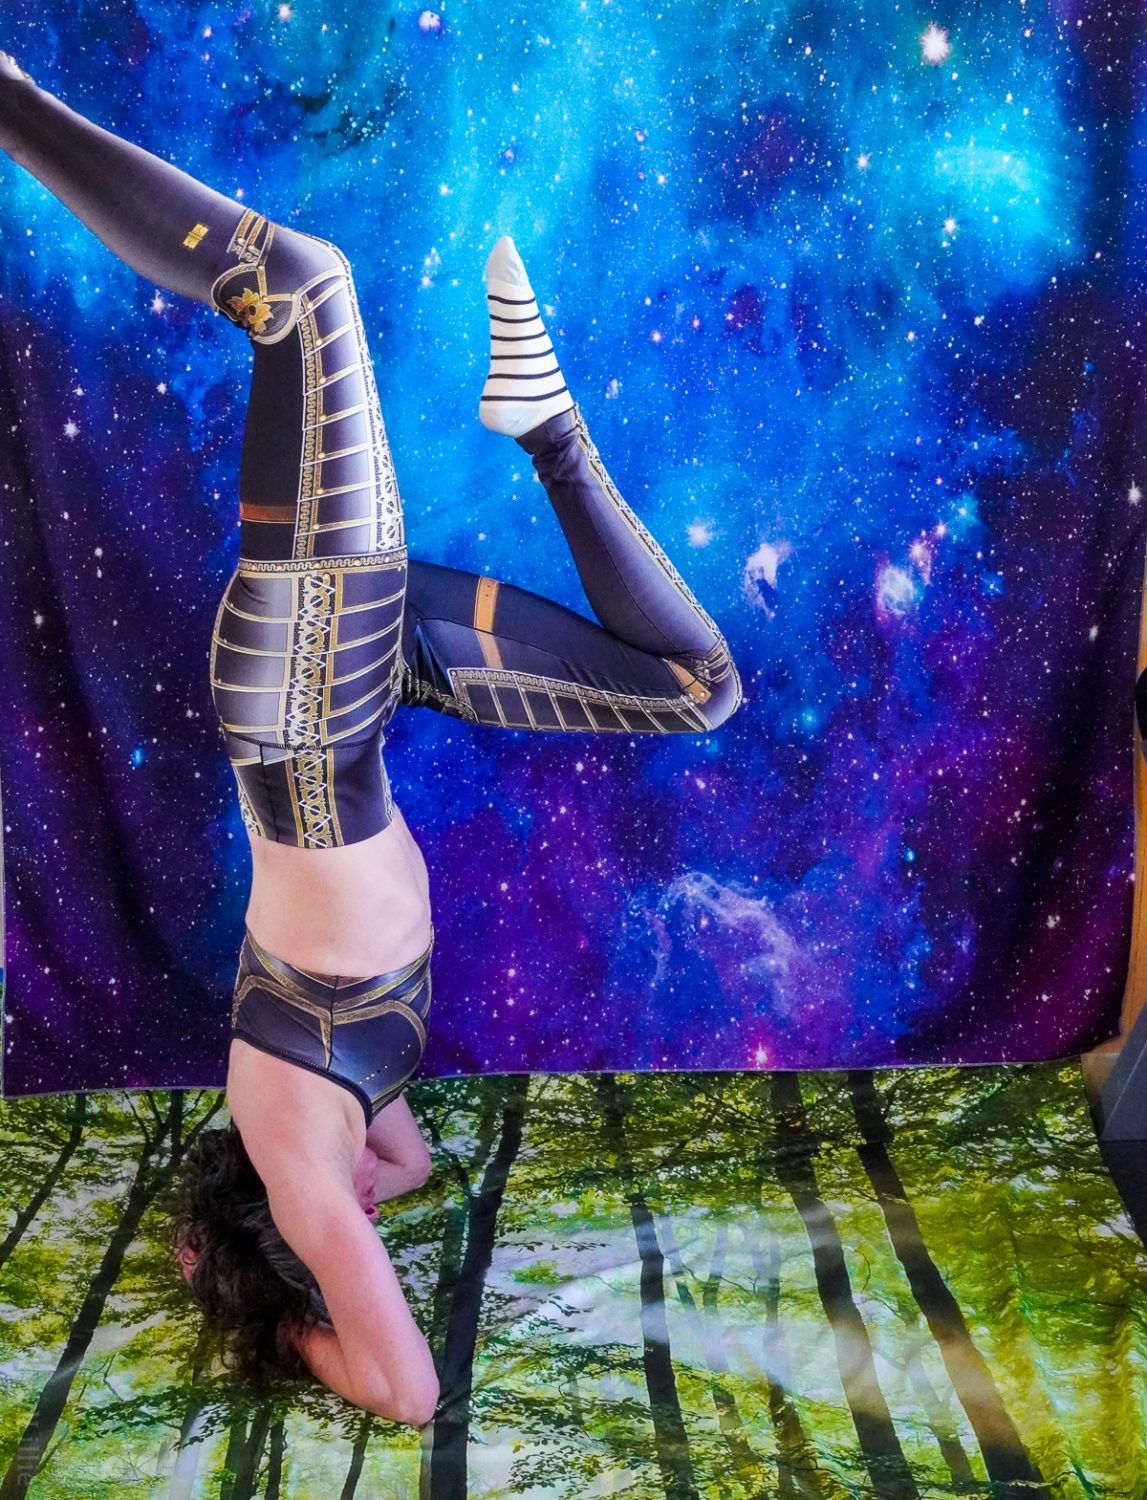 Armor leggings and headstand